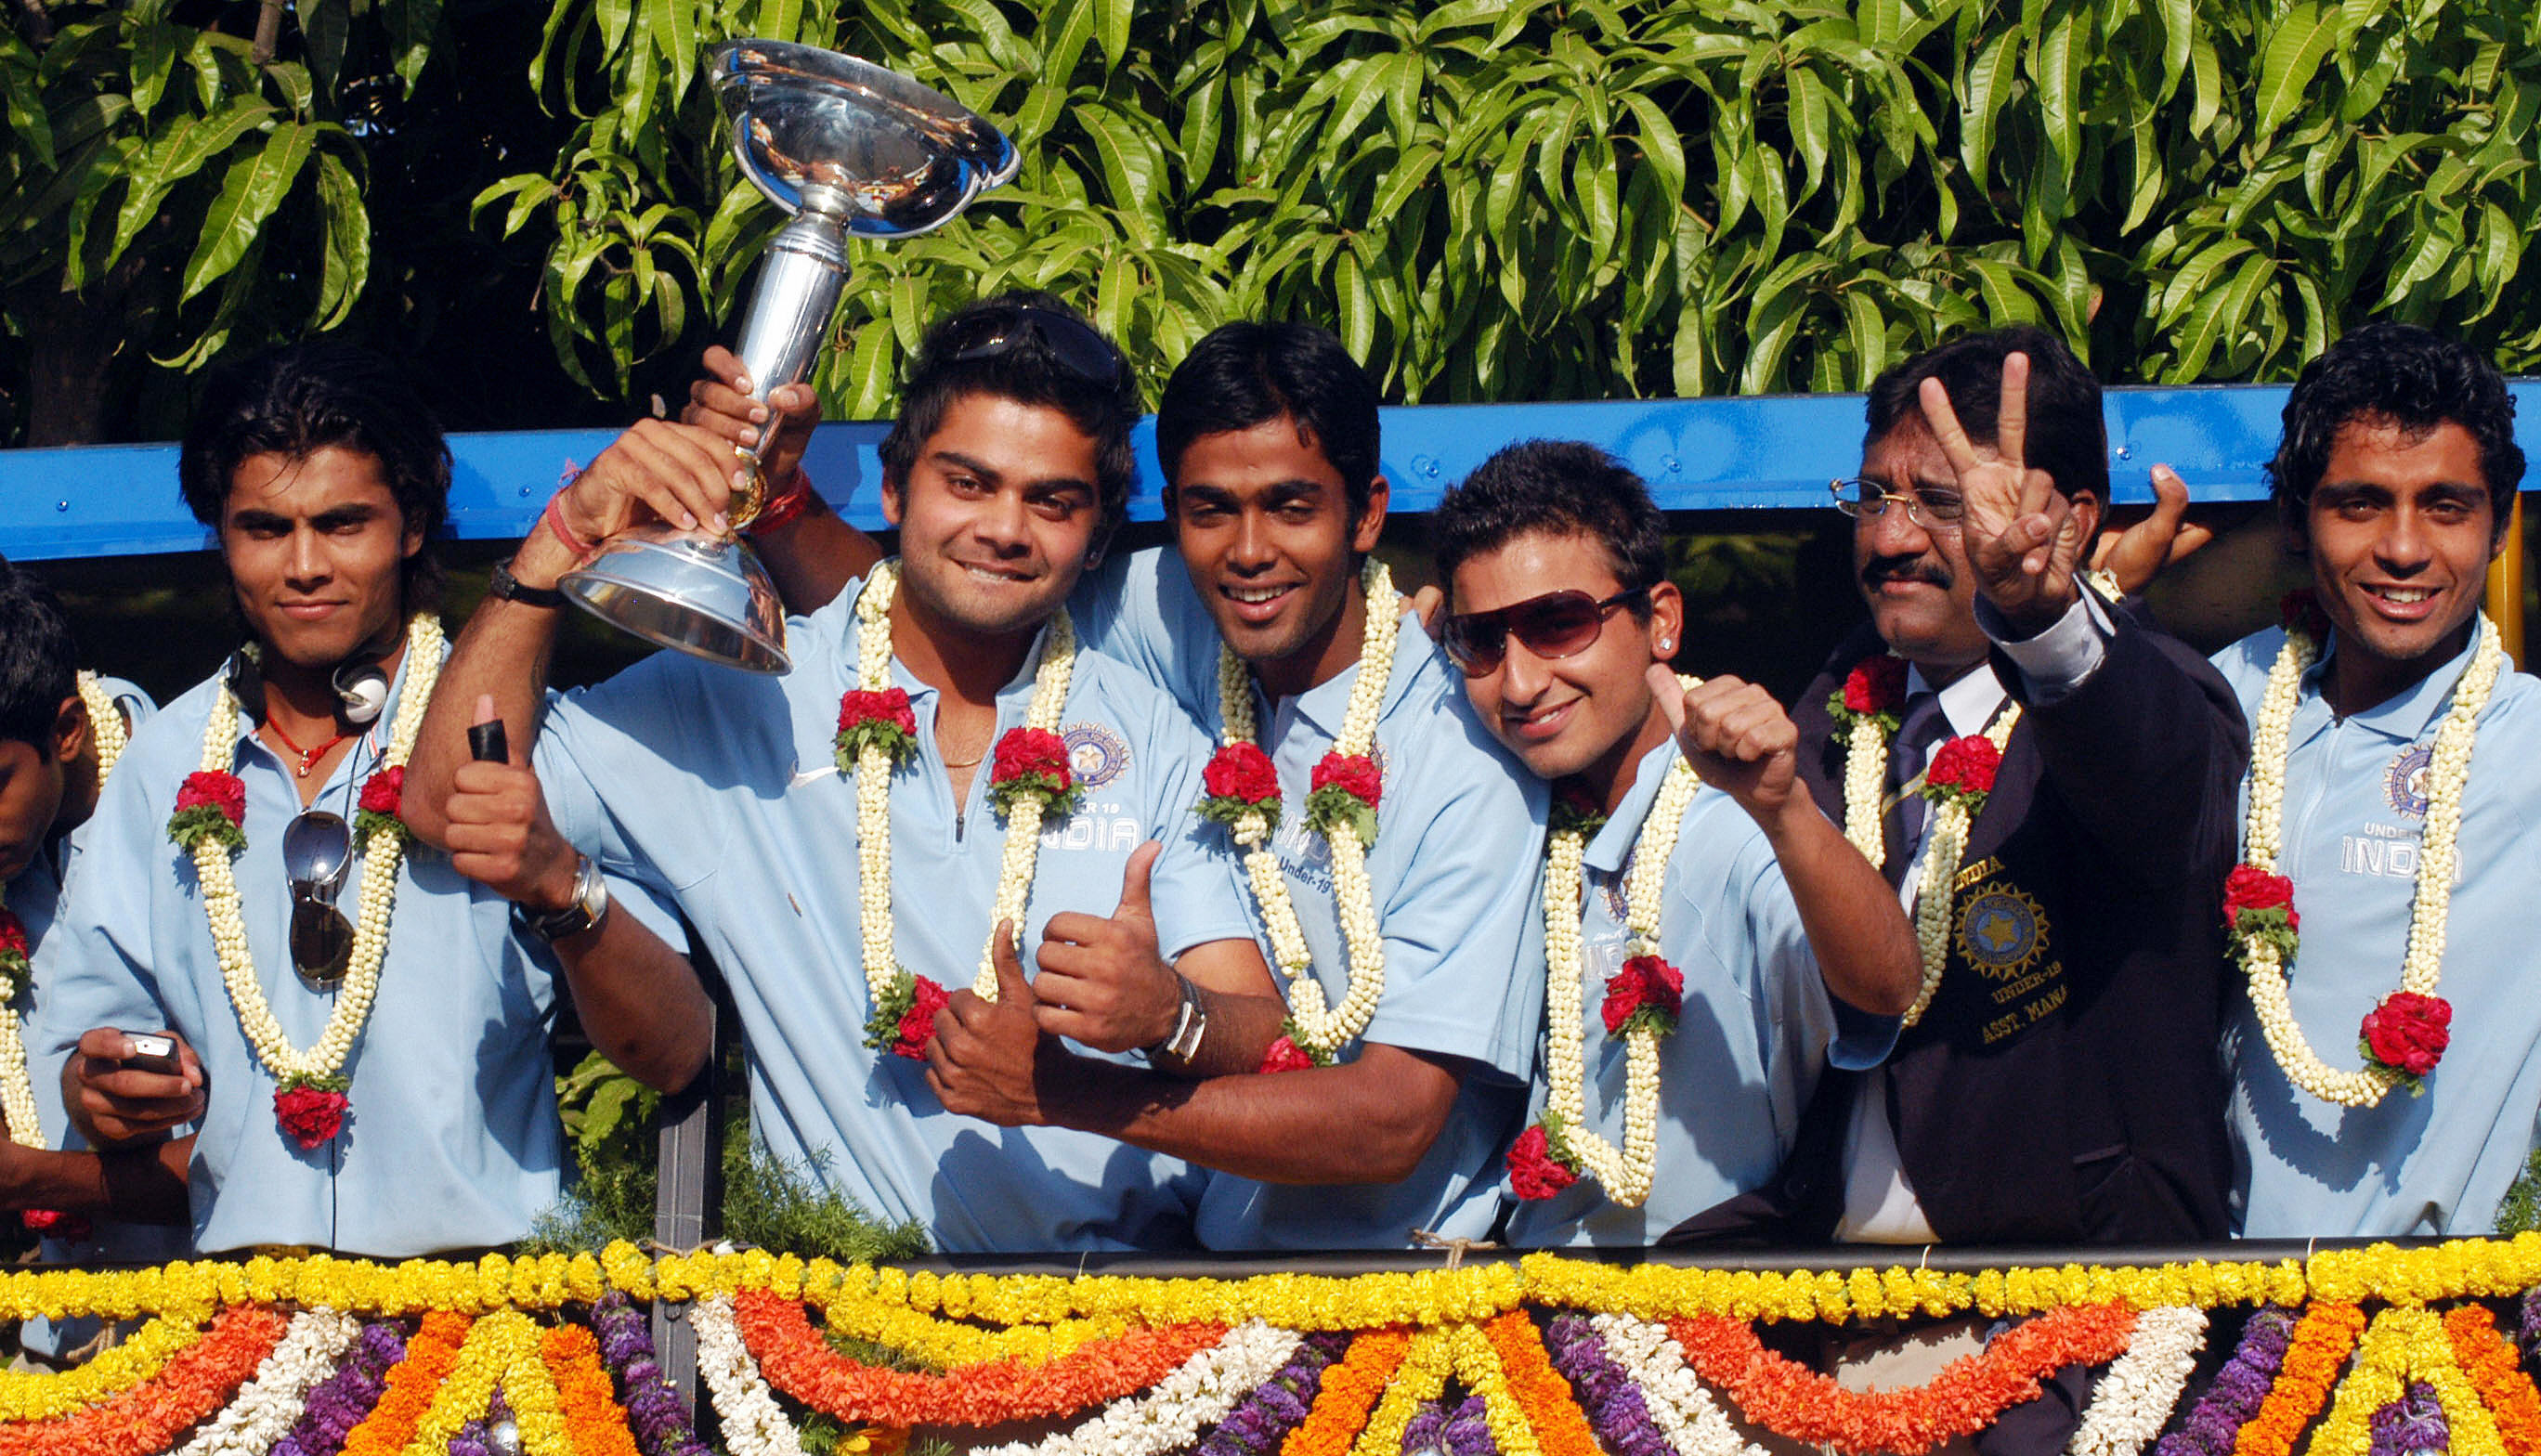 Virat Kohli led India to the ICC Under 19 World Cup title in 2008.